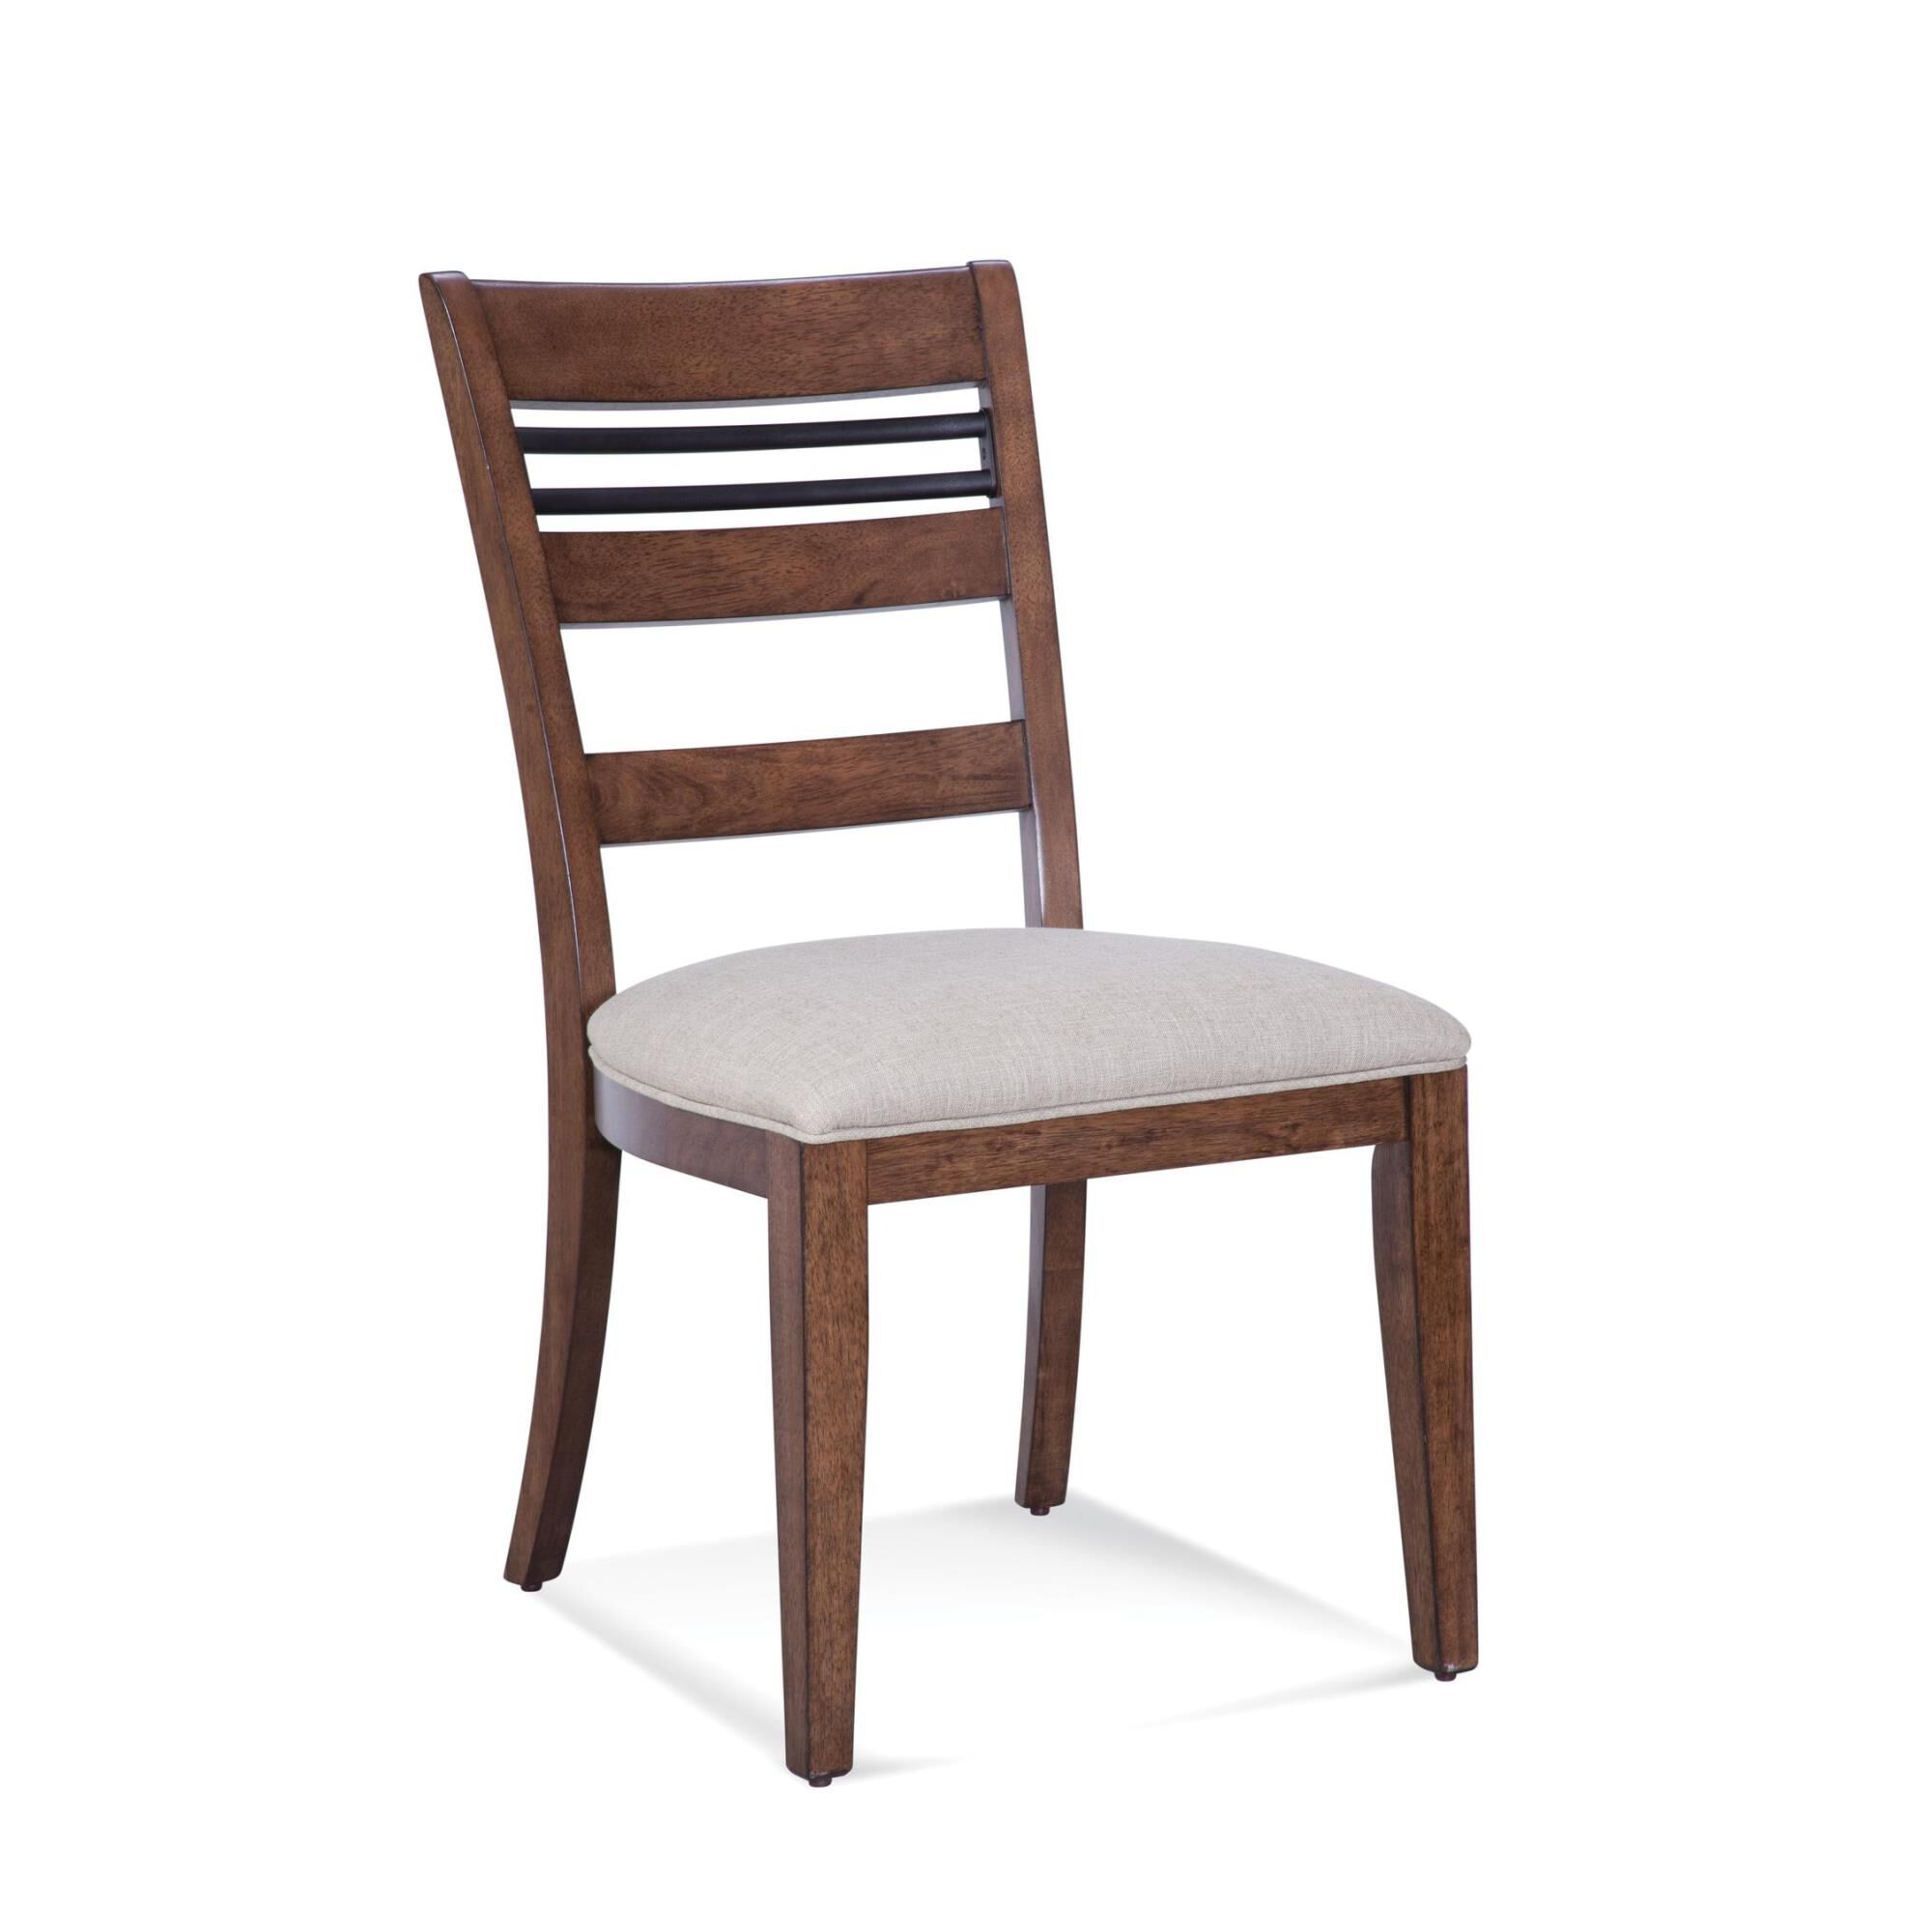 Bassett Mirror Company Penner Dining Chair Penner - 1155-dr-800ec - Transitional Dining Chair